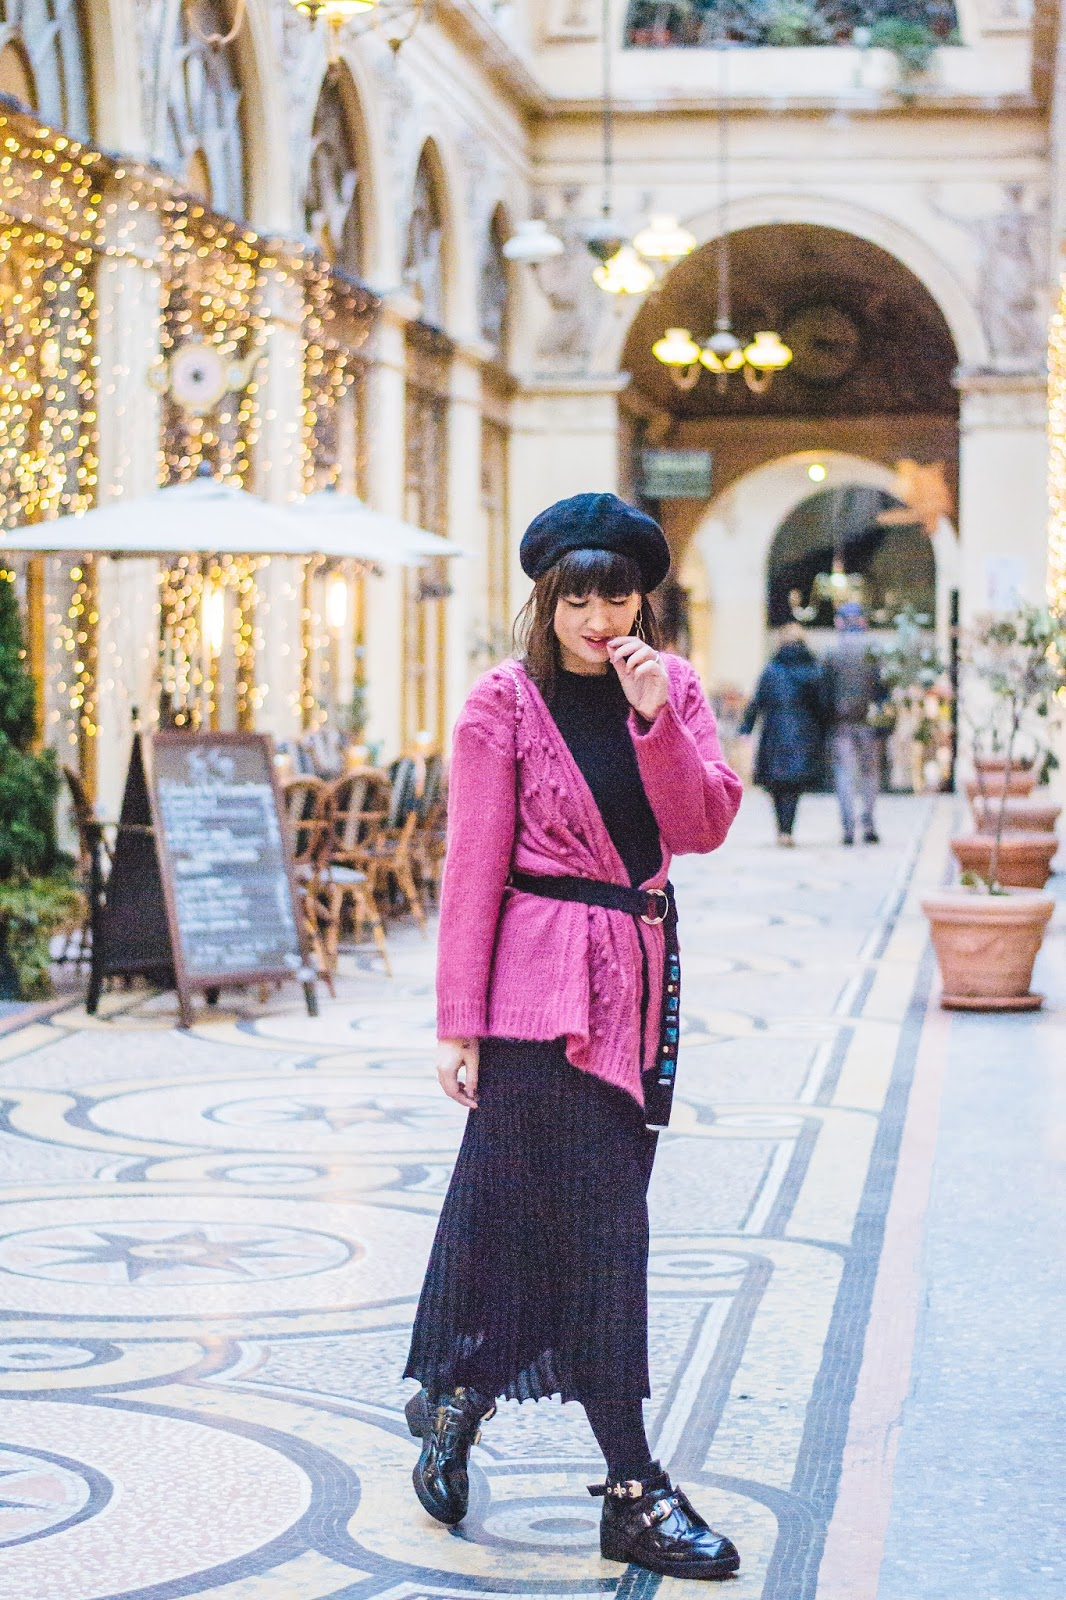 meetmeinparee-style-look-fashion-pairsianstyle-streetstyle-winterfashionideas